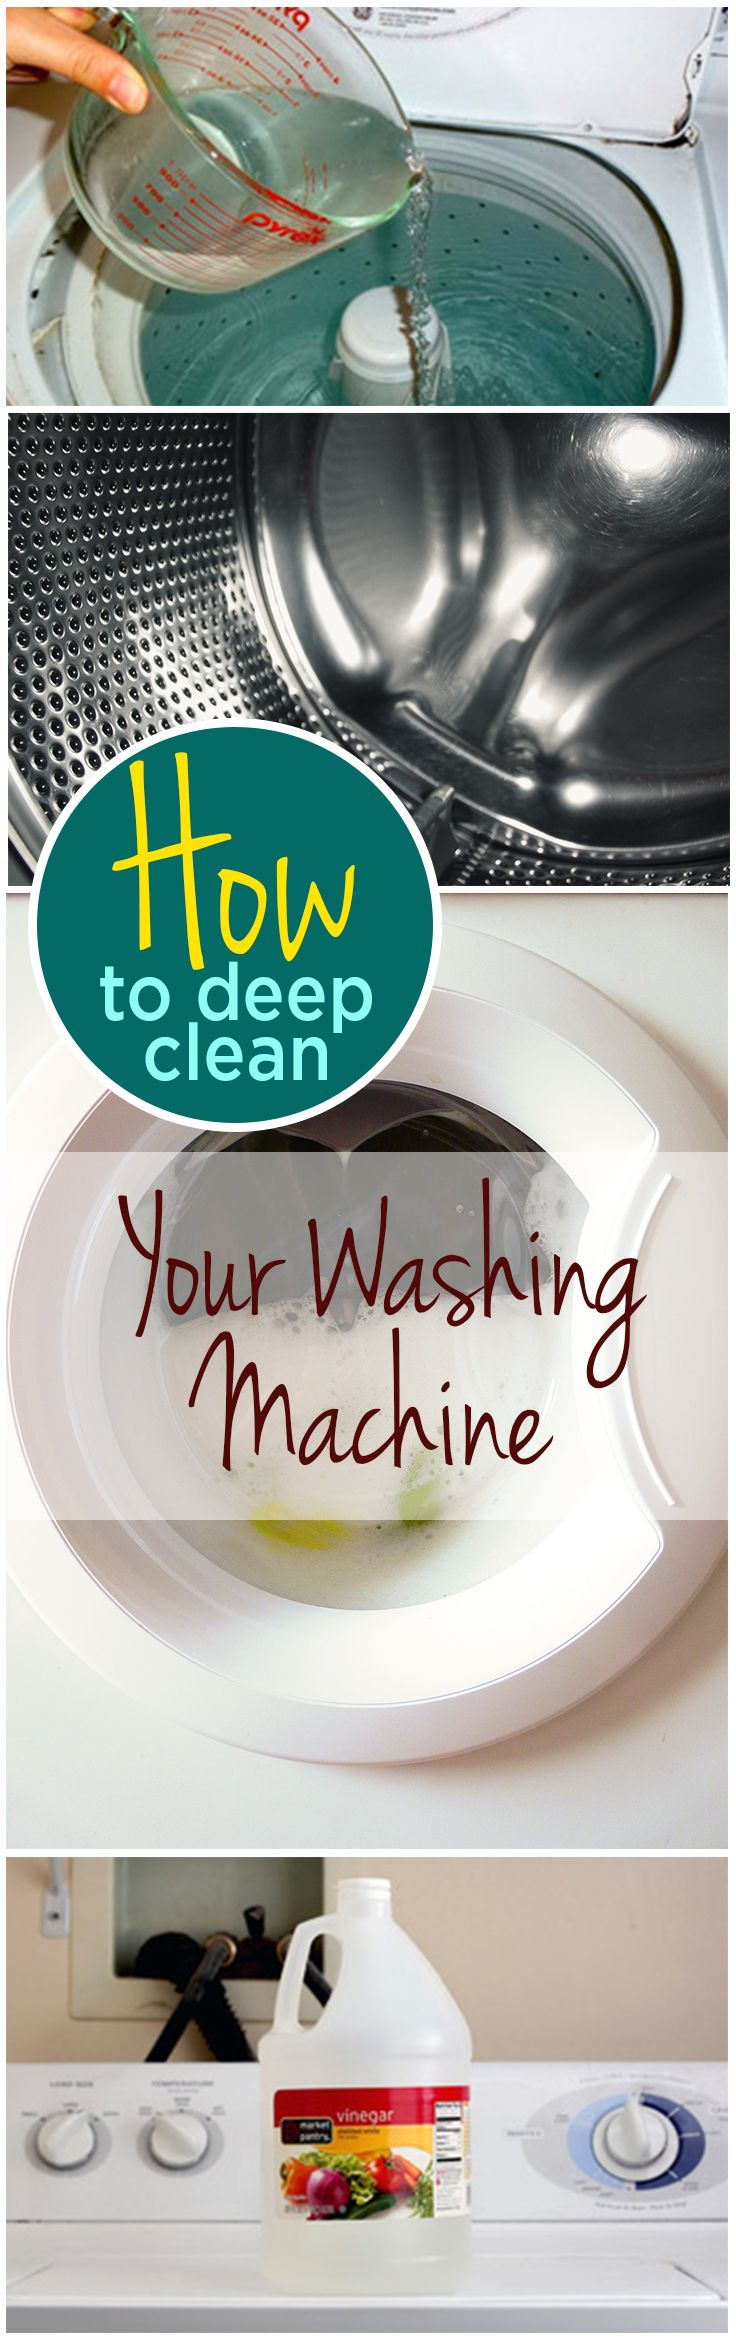 Badkamer Grondig Schoonmaken How To Deep Clean Your Washing Machine Tips Pinterest Pulire